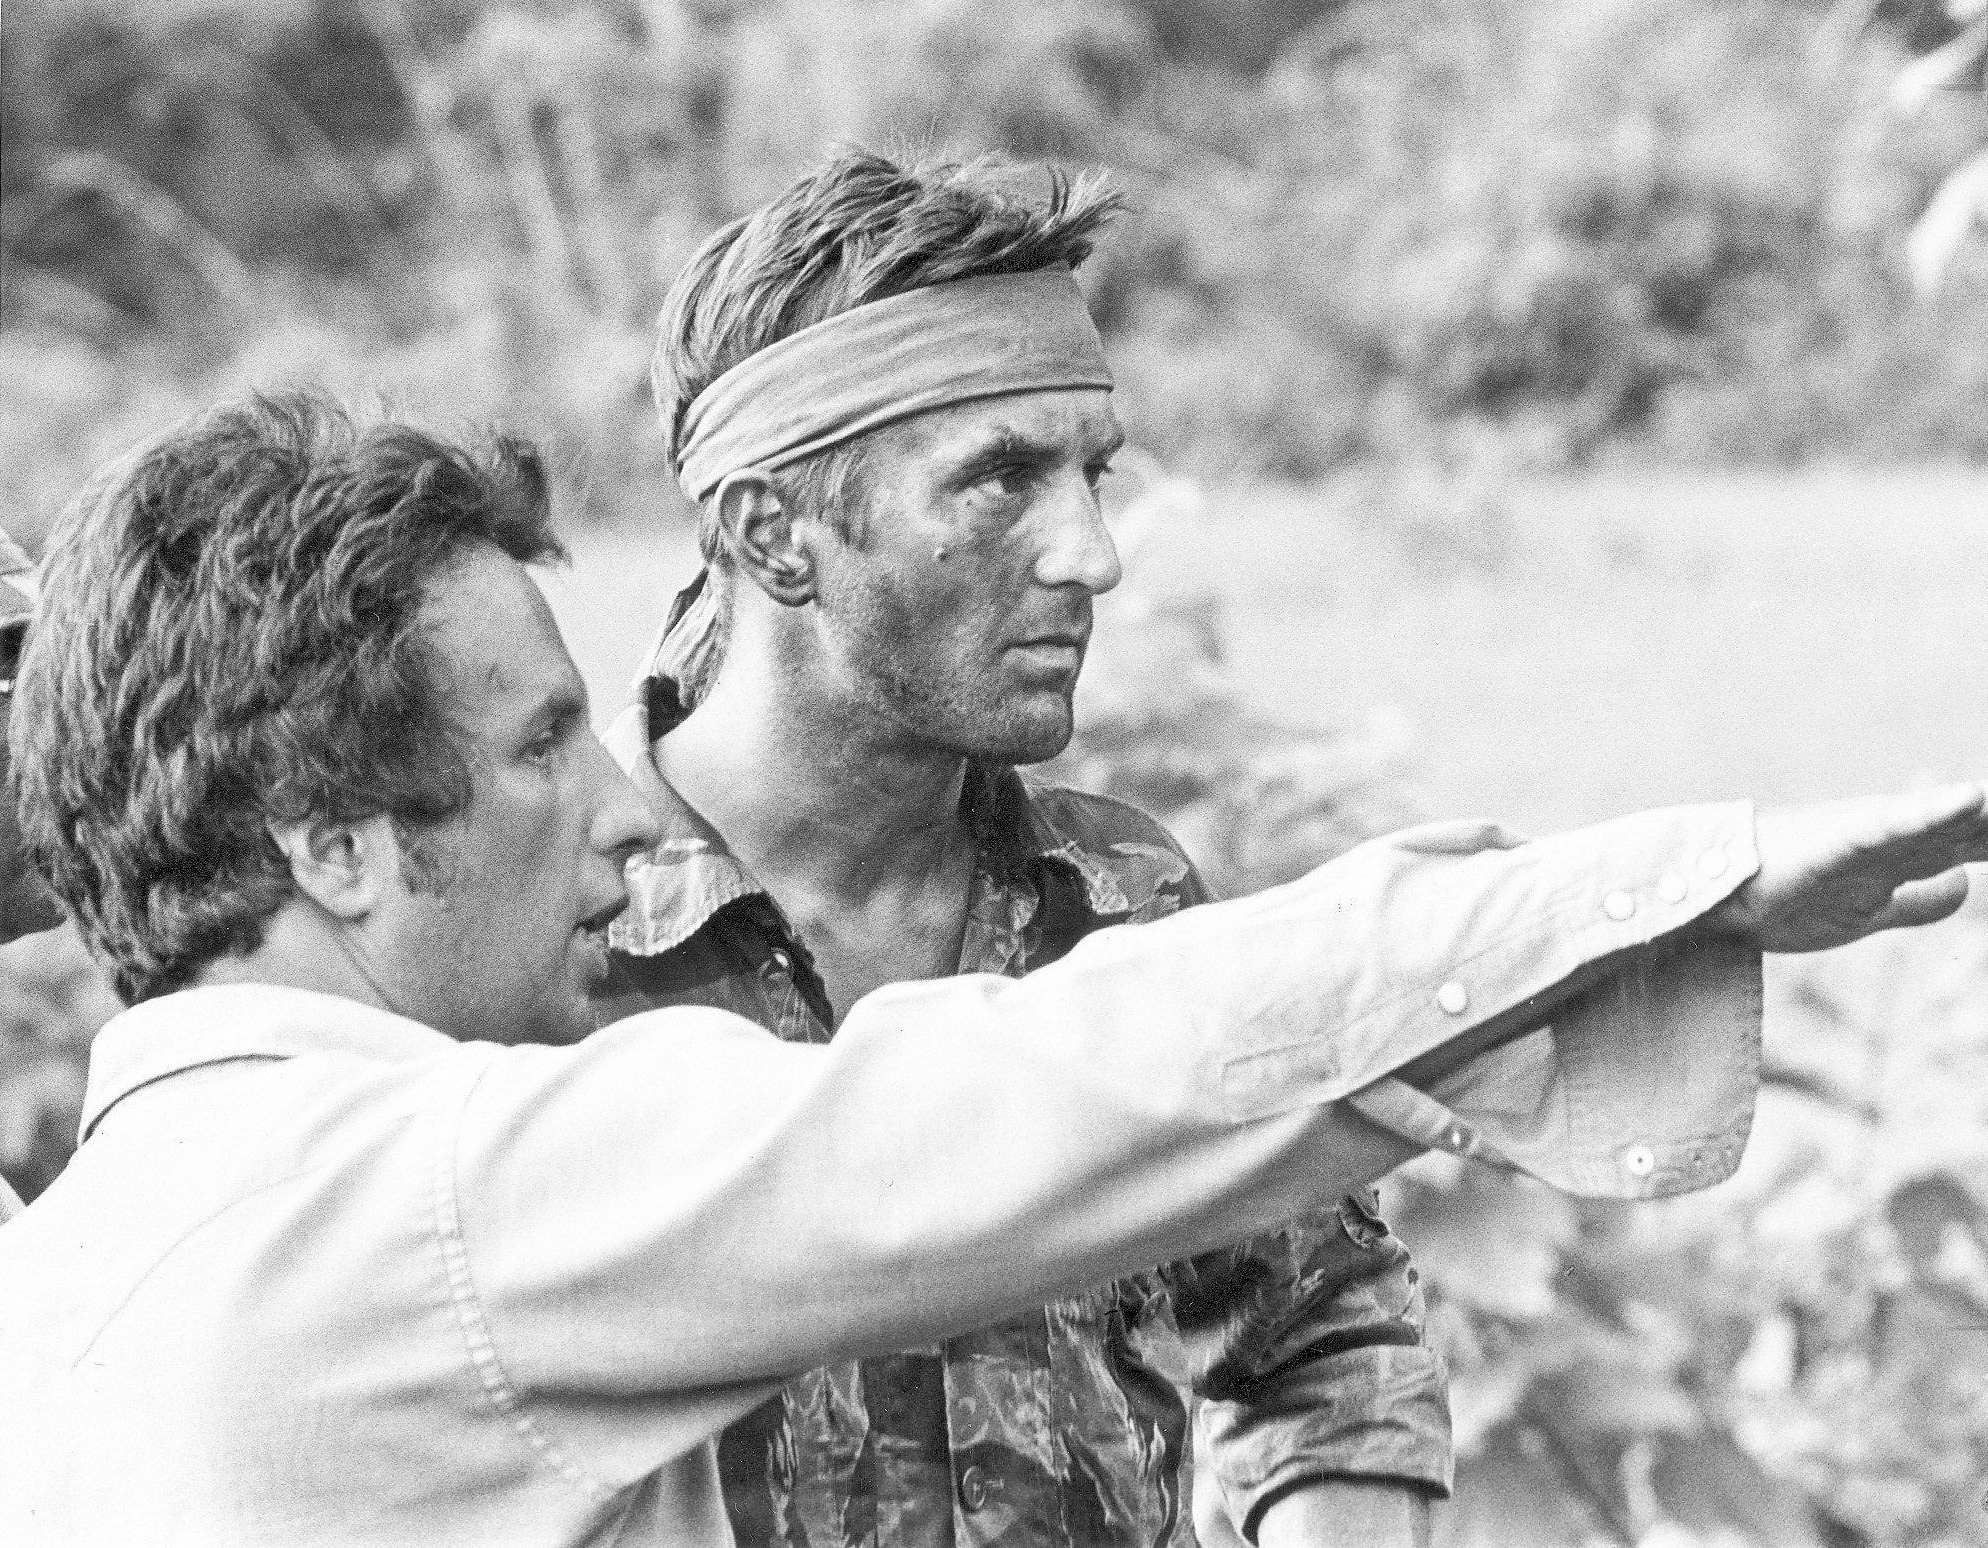 The Deer Hunter - Michael Cimino on the set with Robert De Niro